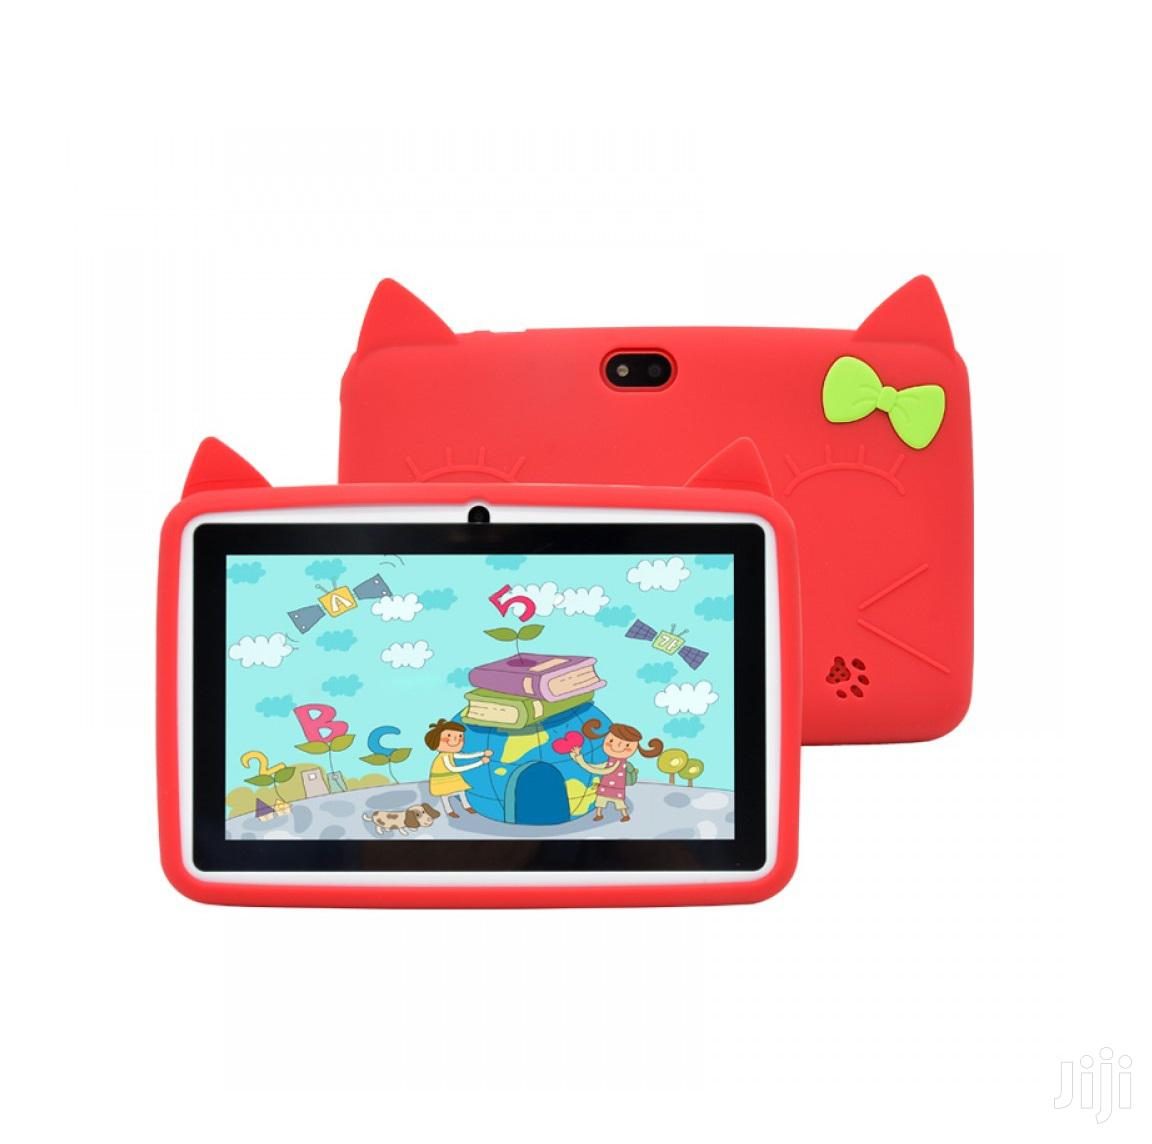 """G-tab Q53 Kids 7.0"""" Android Tablet For Study & Games"""